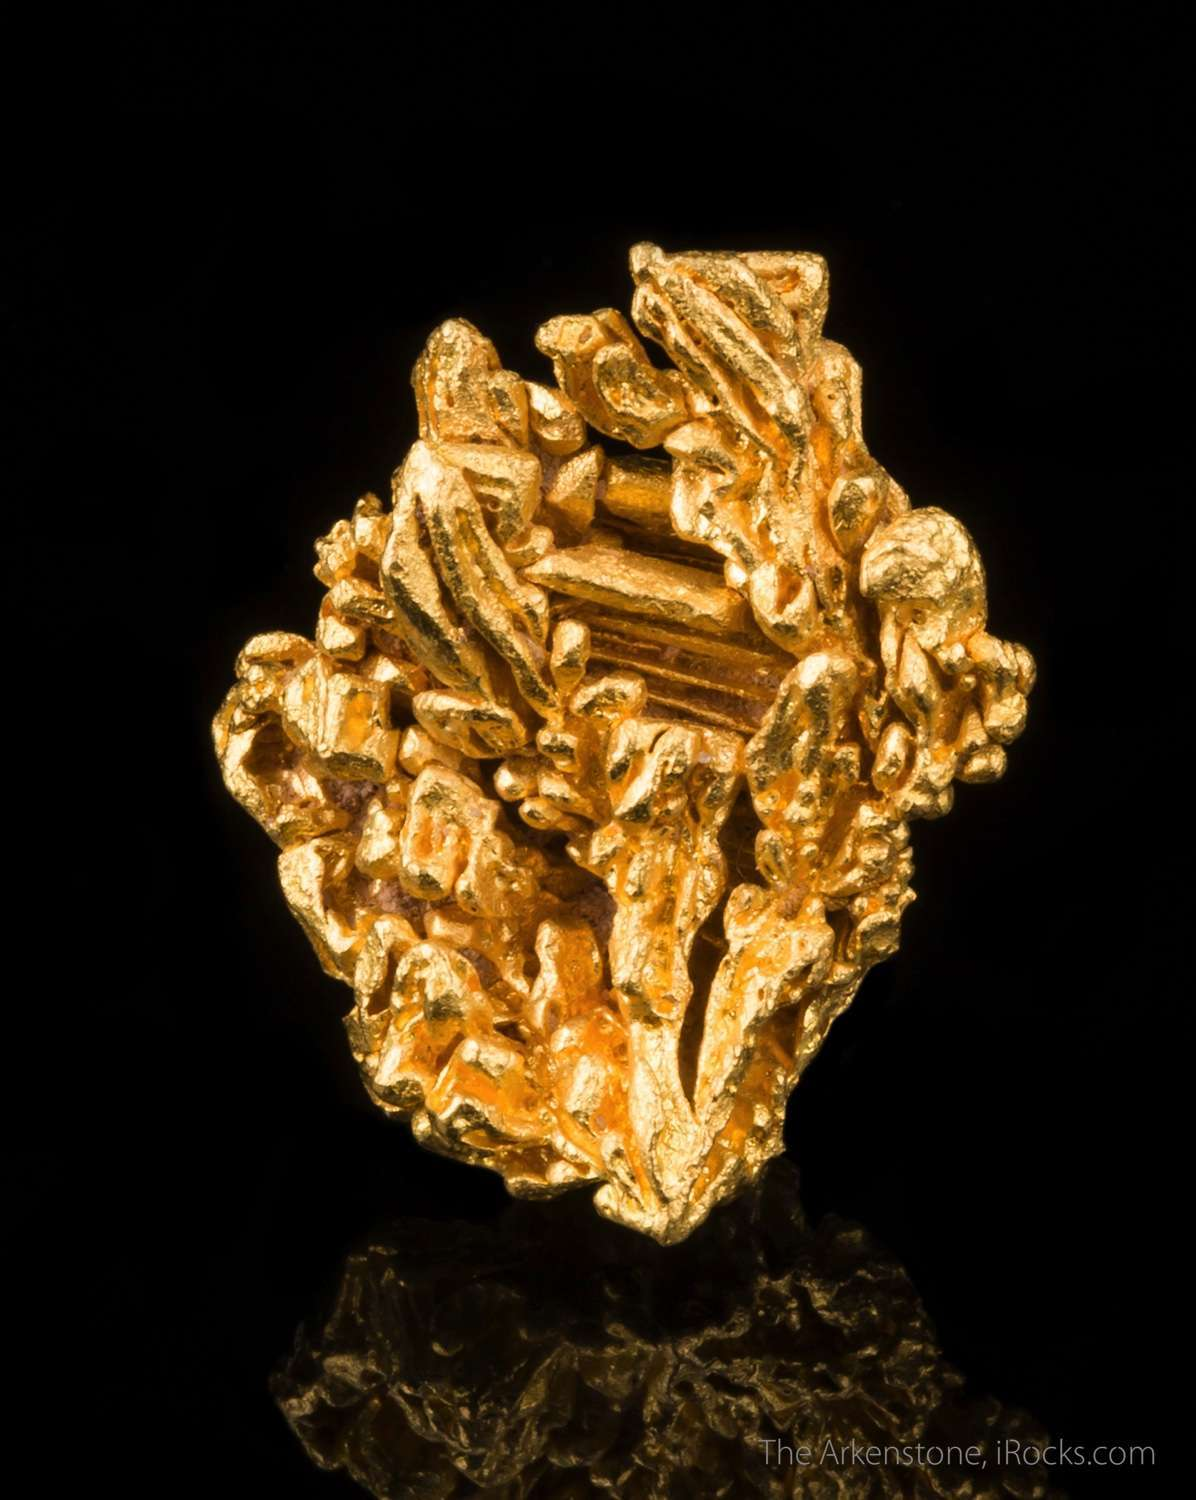 buy natural gold crystals from the arkenstone